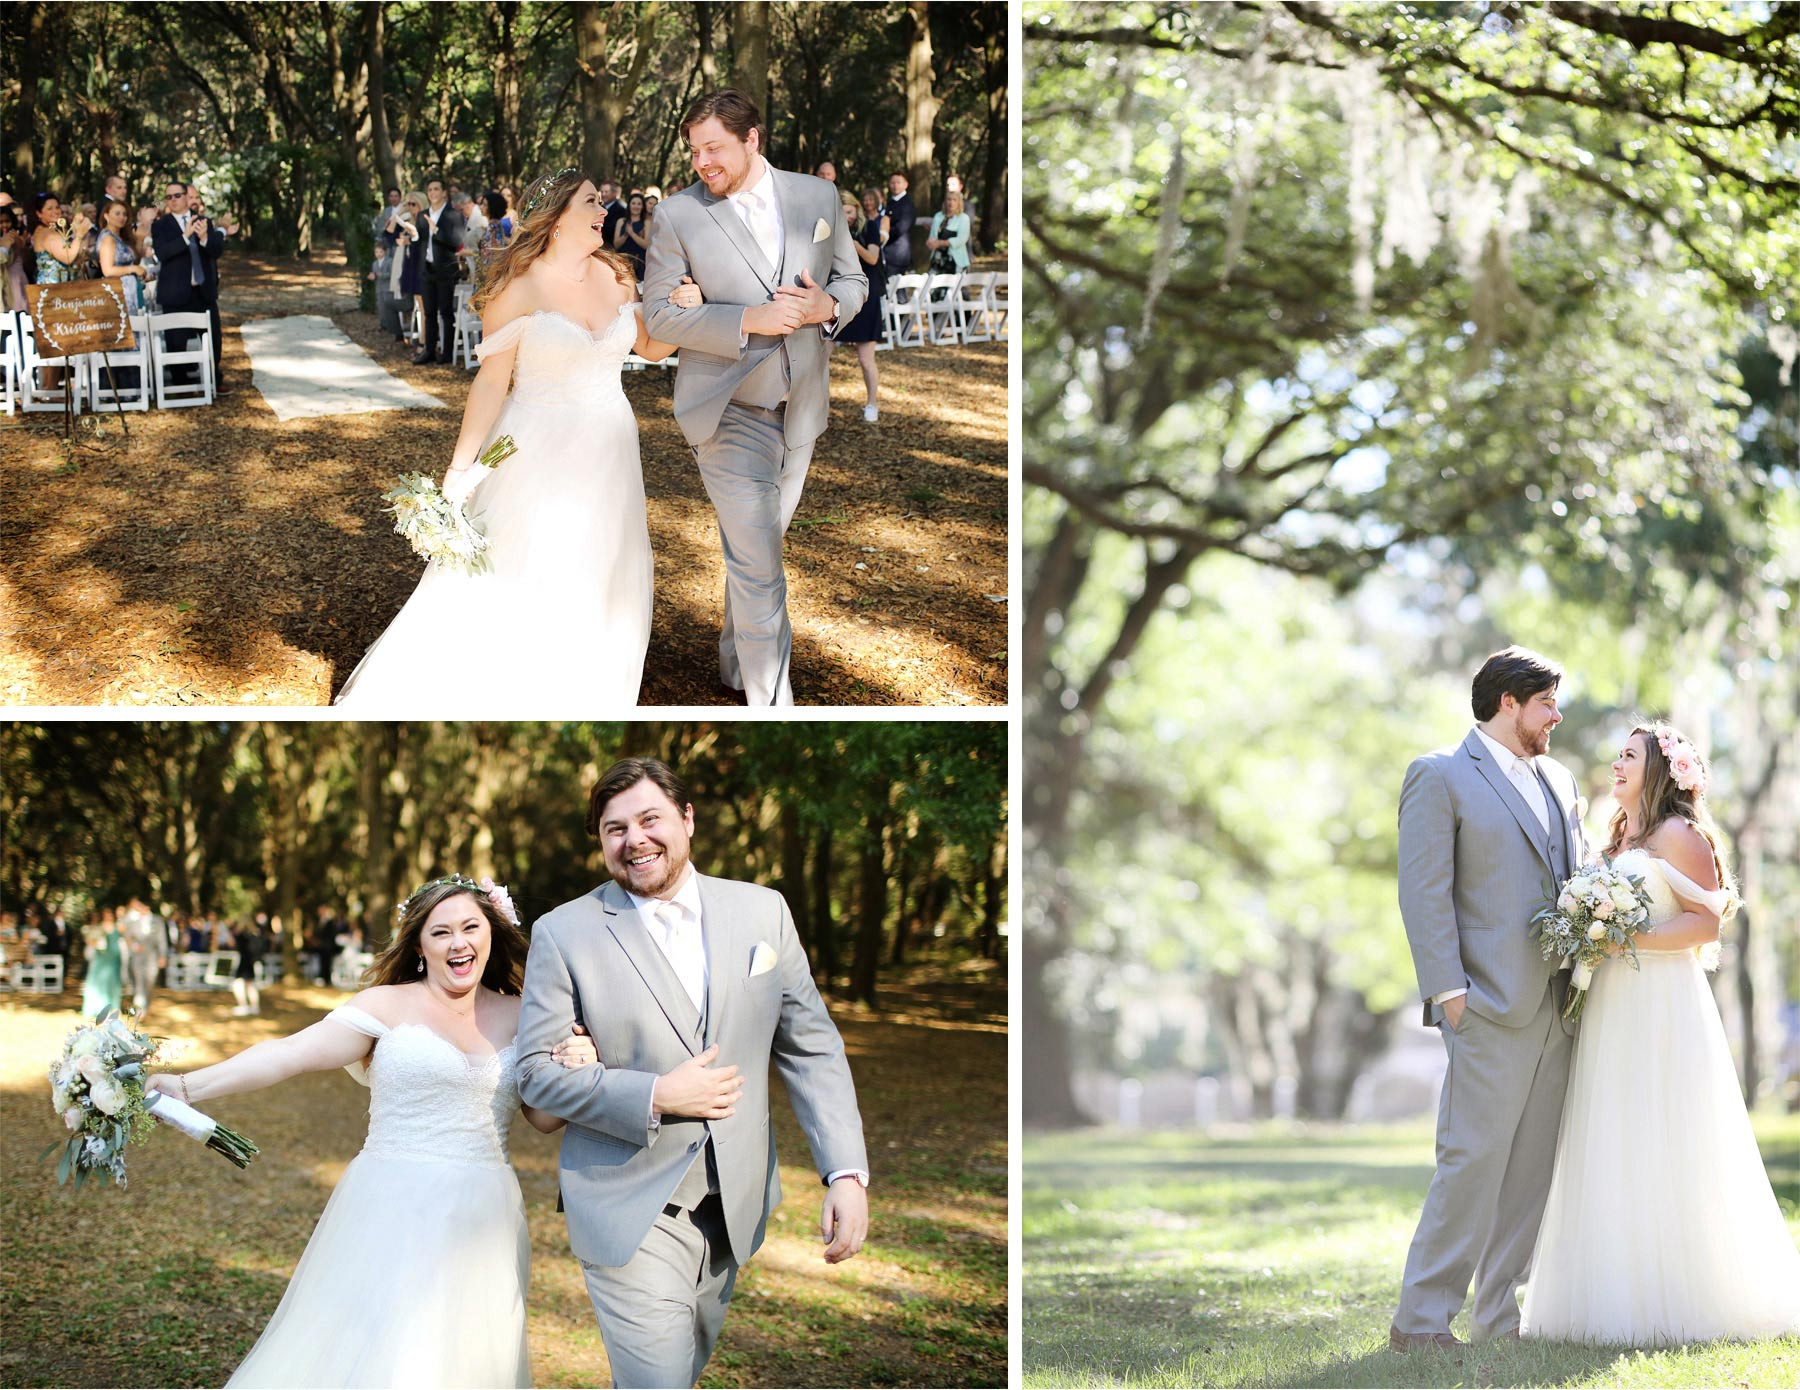 19-Brandon-Florida-Wedding-Photographer-by-Andrew-Vick-Photography-Casa-Lantana-Spring-Ceremony-Bride-Groom-Recessional-Excitement-Flower-Crown-Kristianna-and-Ben.jpg